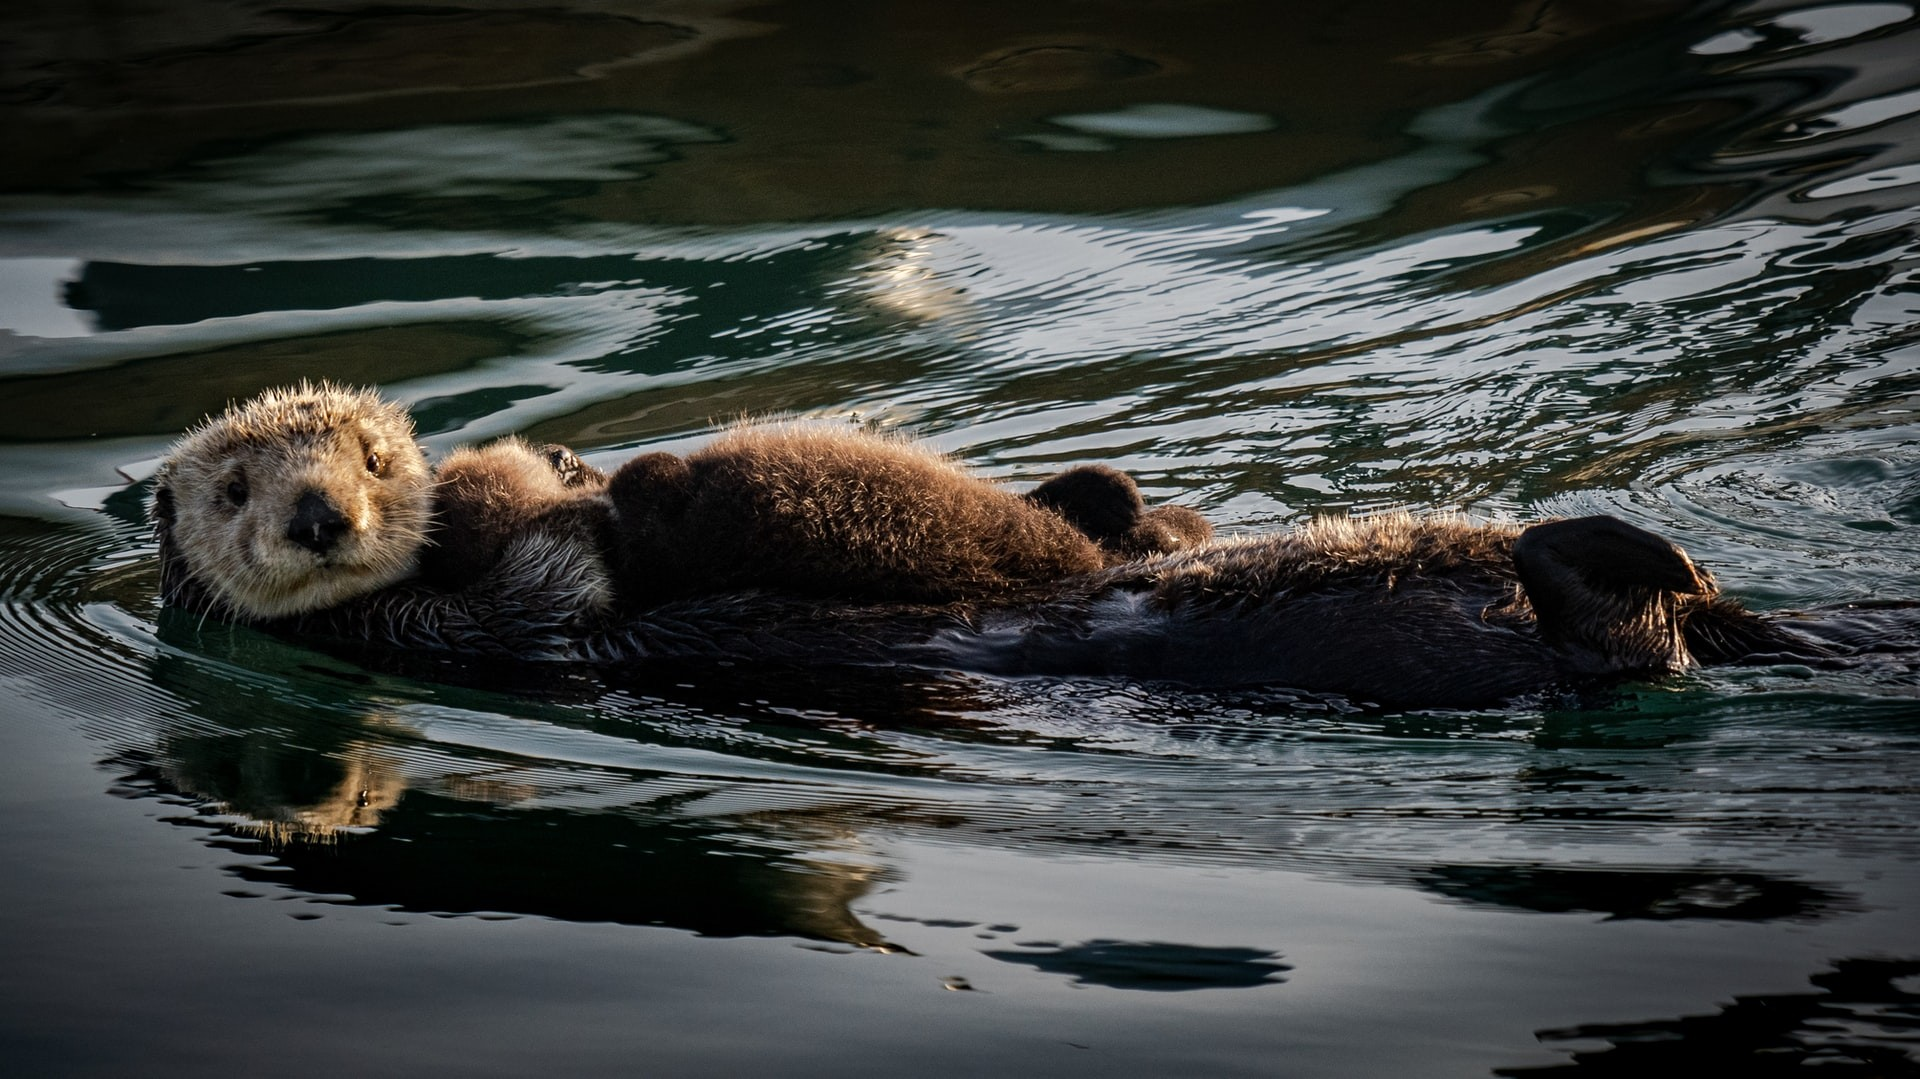 A sea otter plays in the water.